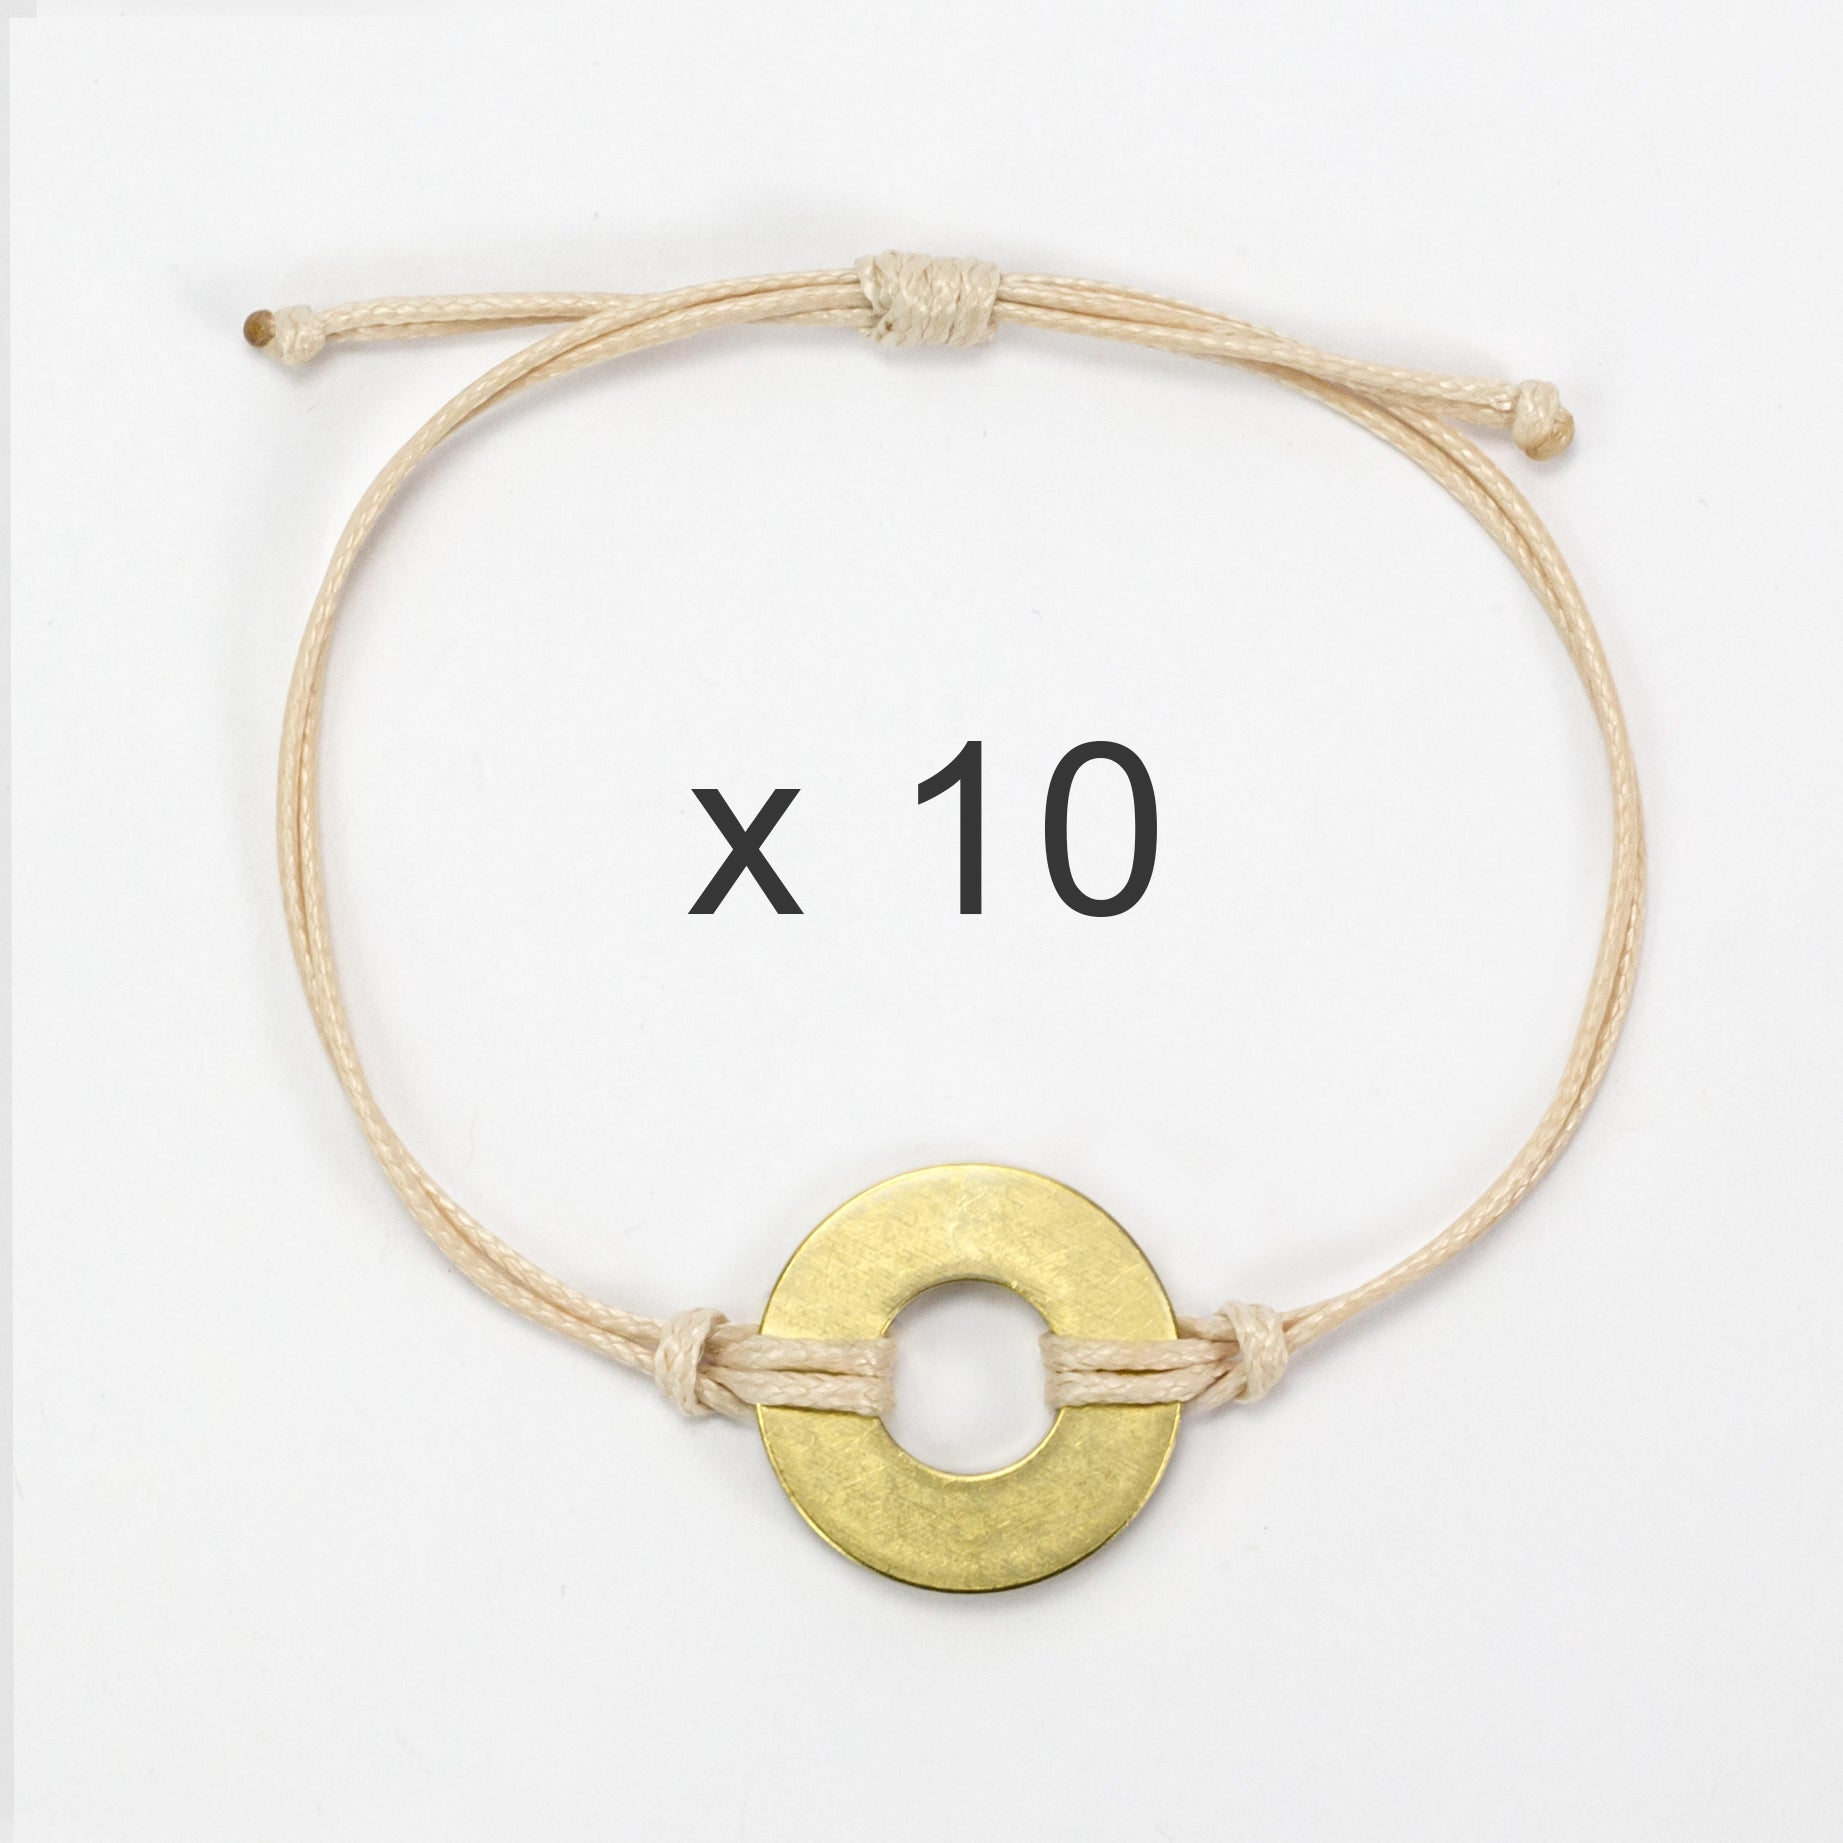 MyIntent Refill Classic Bracelets Cream String set of 10 with Brass tokens